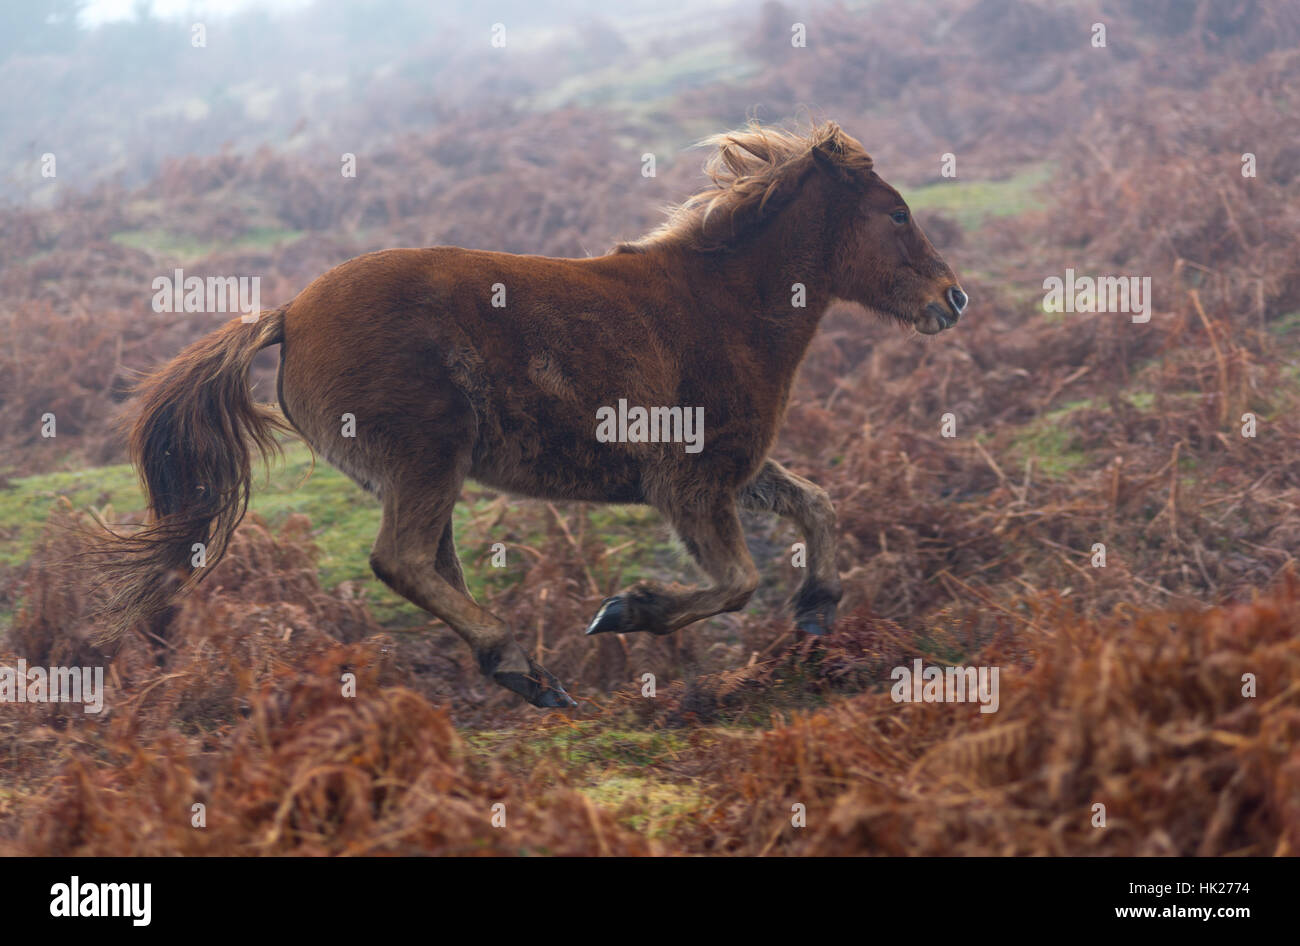 New Forest pony running through bracken. - Stock Image